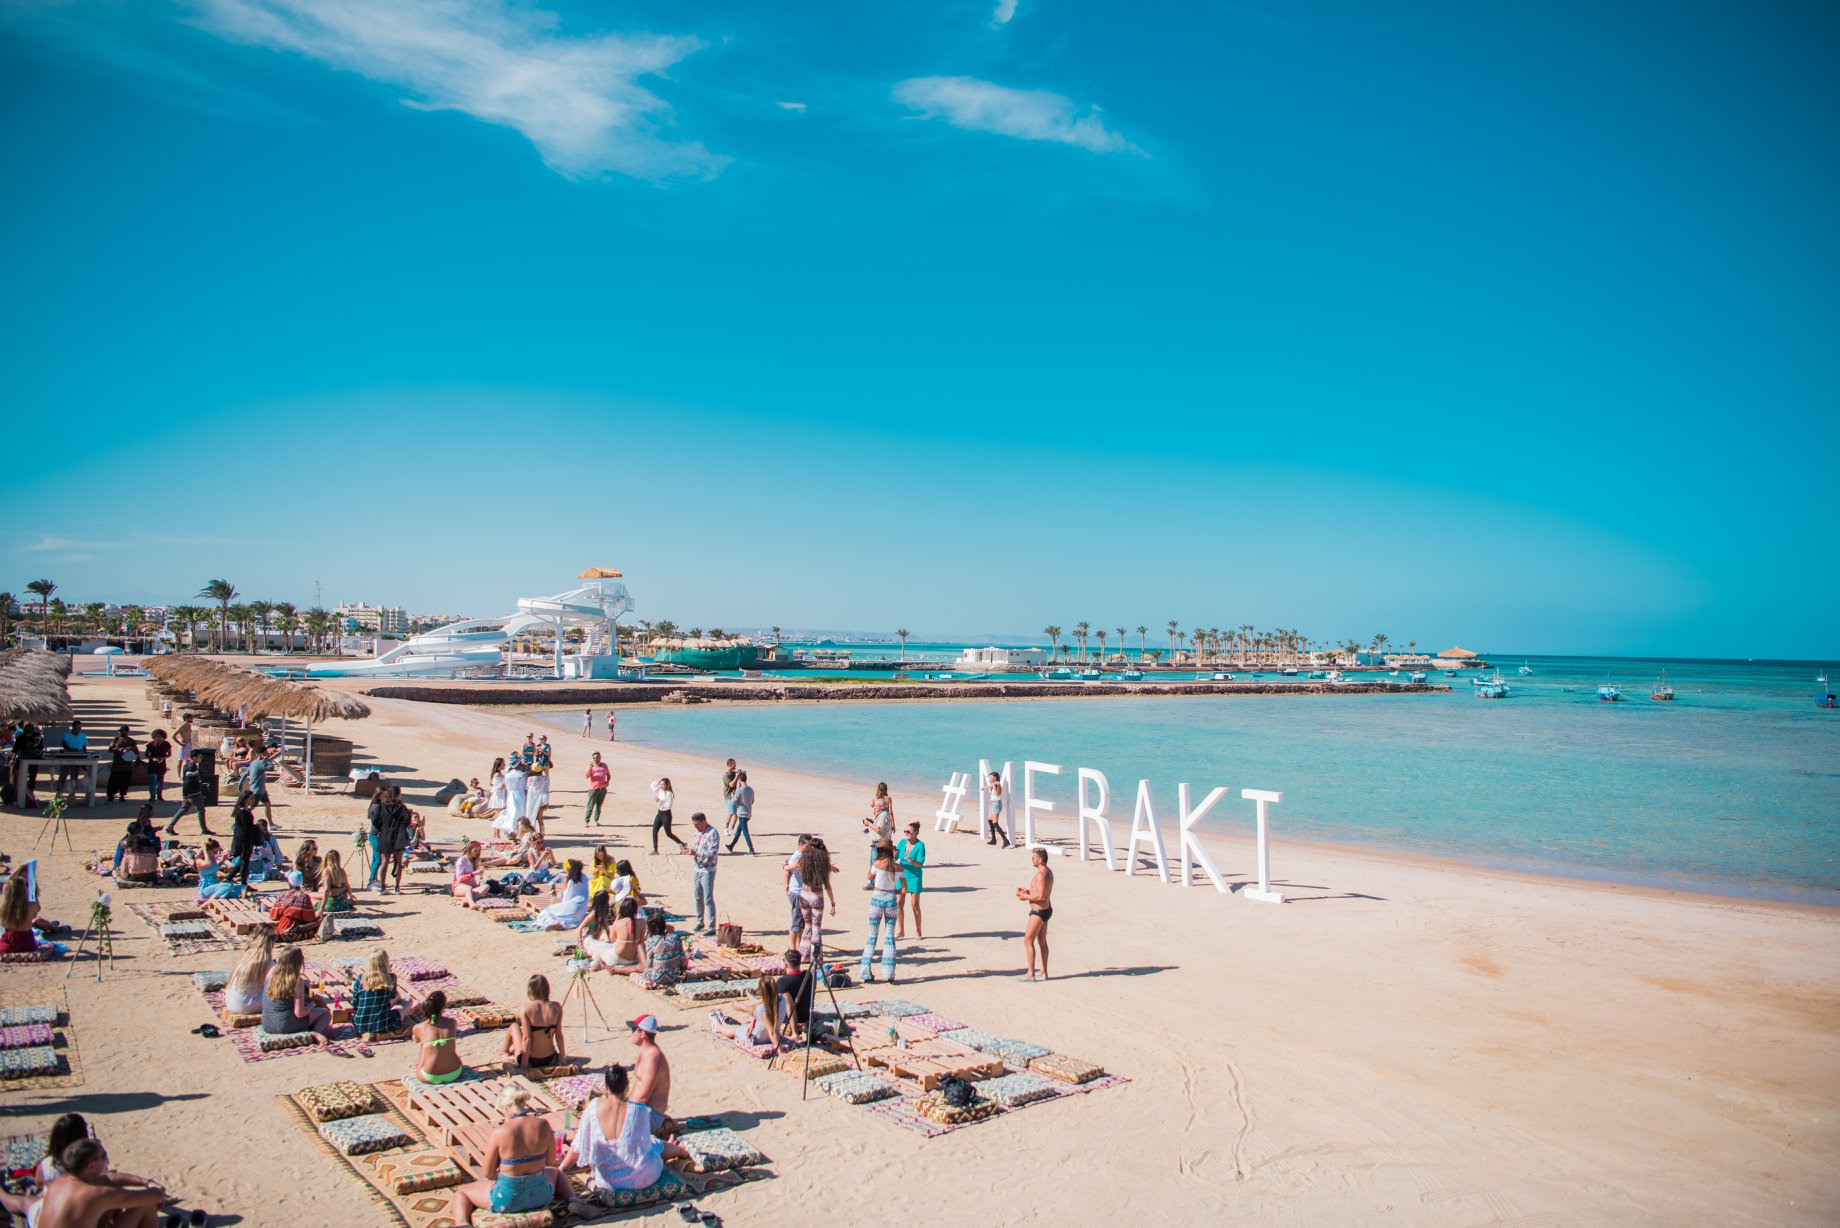 Meraki Beach Resort, Hurghada Image 2